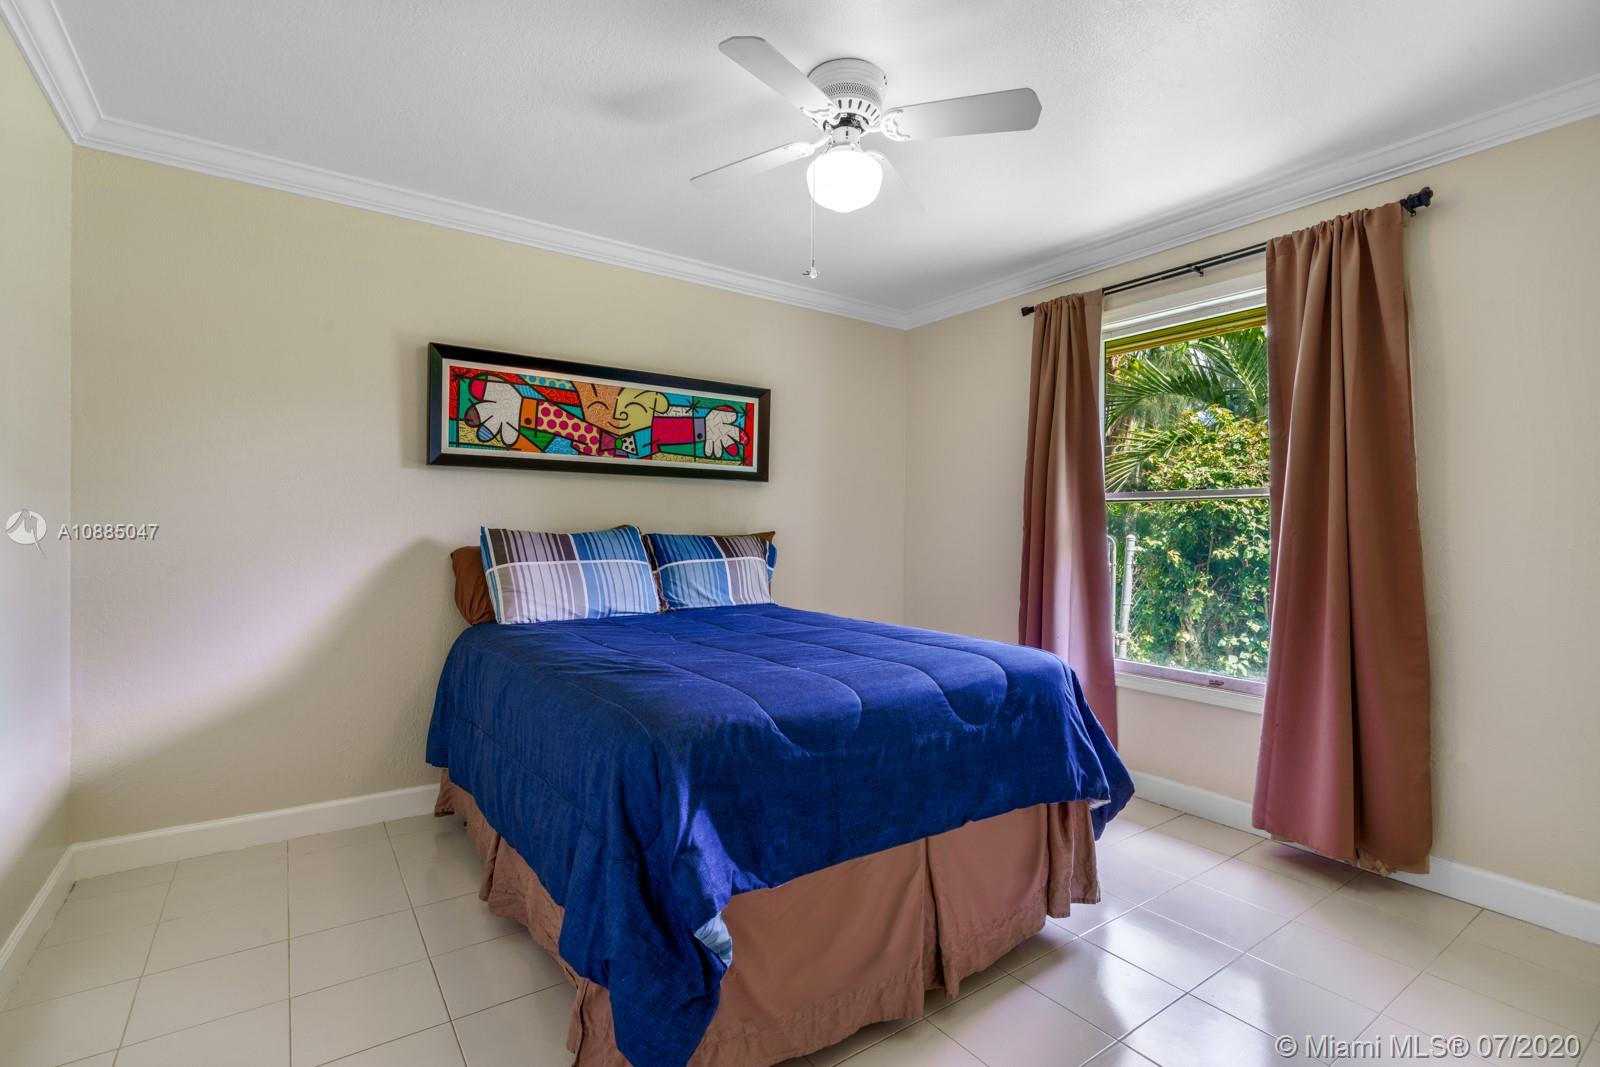 17201 SW 84th Ave, Palmetto Bay, Florida 33157, 4 Bedrooms Bedrooms, ,2 BathroomsBathrooms,Residential,For Sale,17201 SW 84th Ave,A10885047